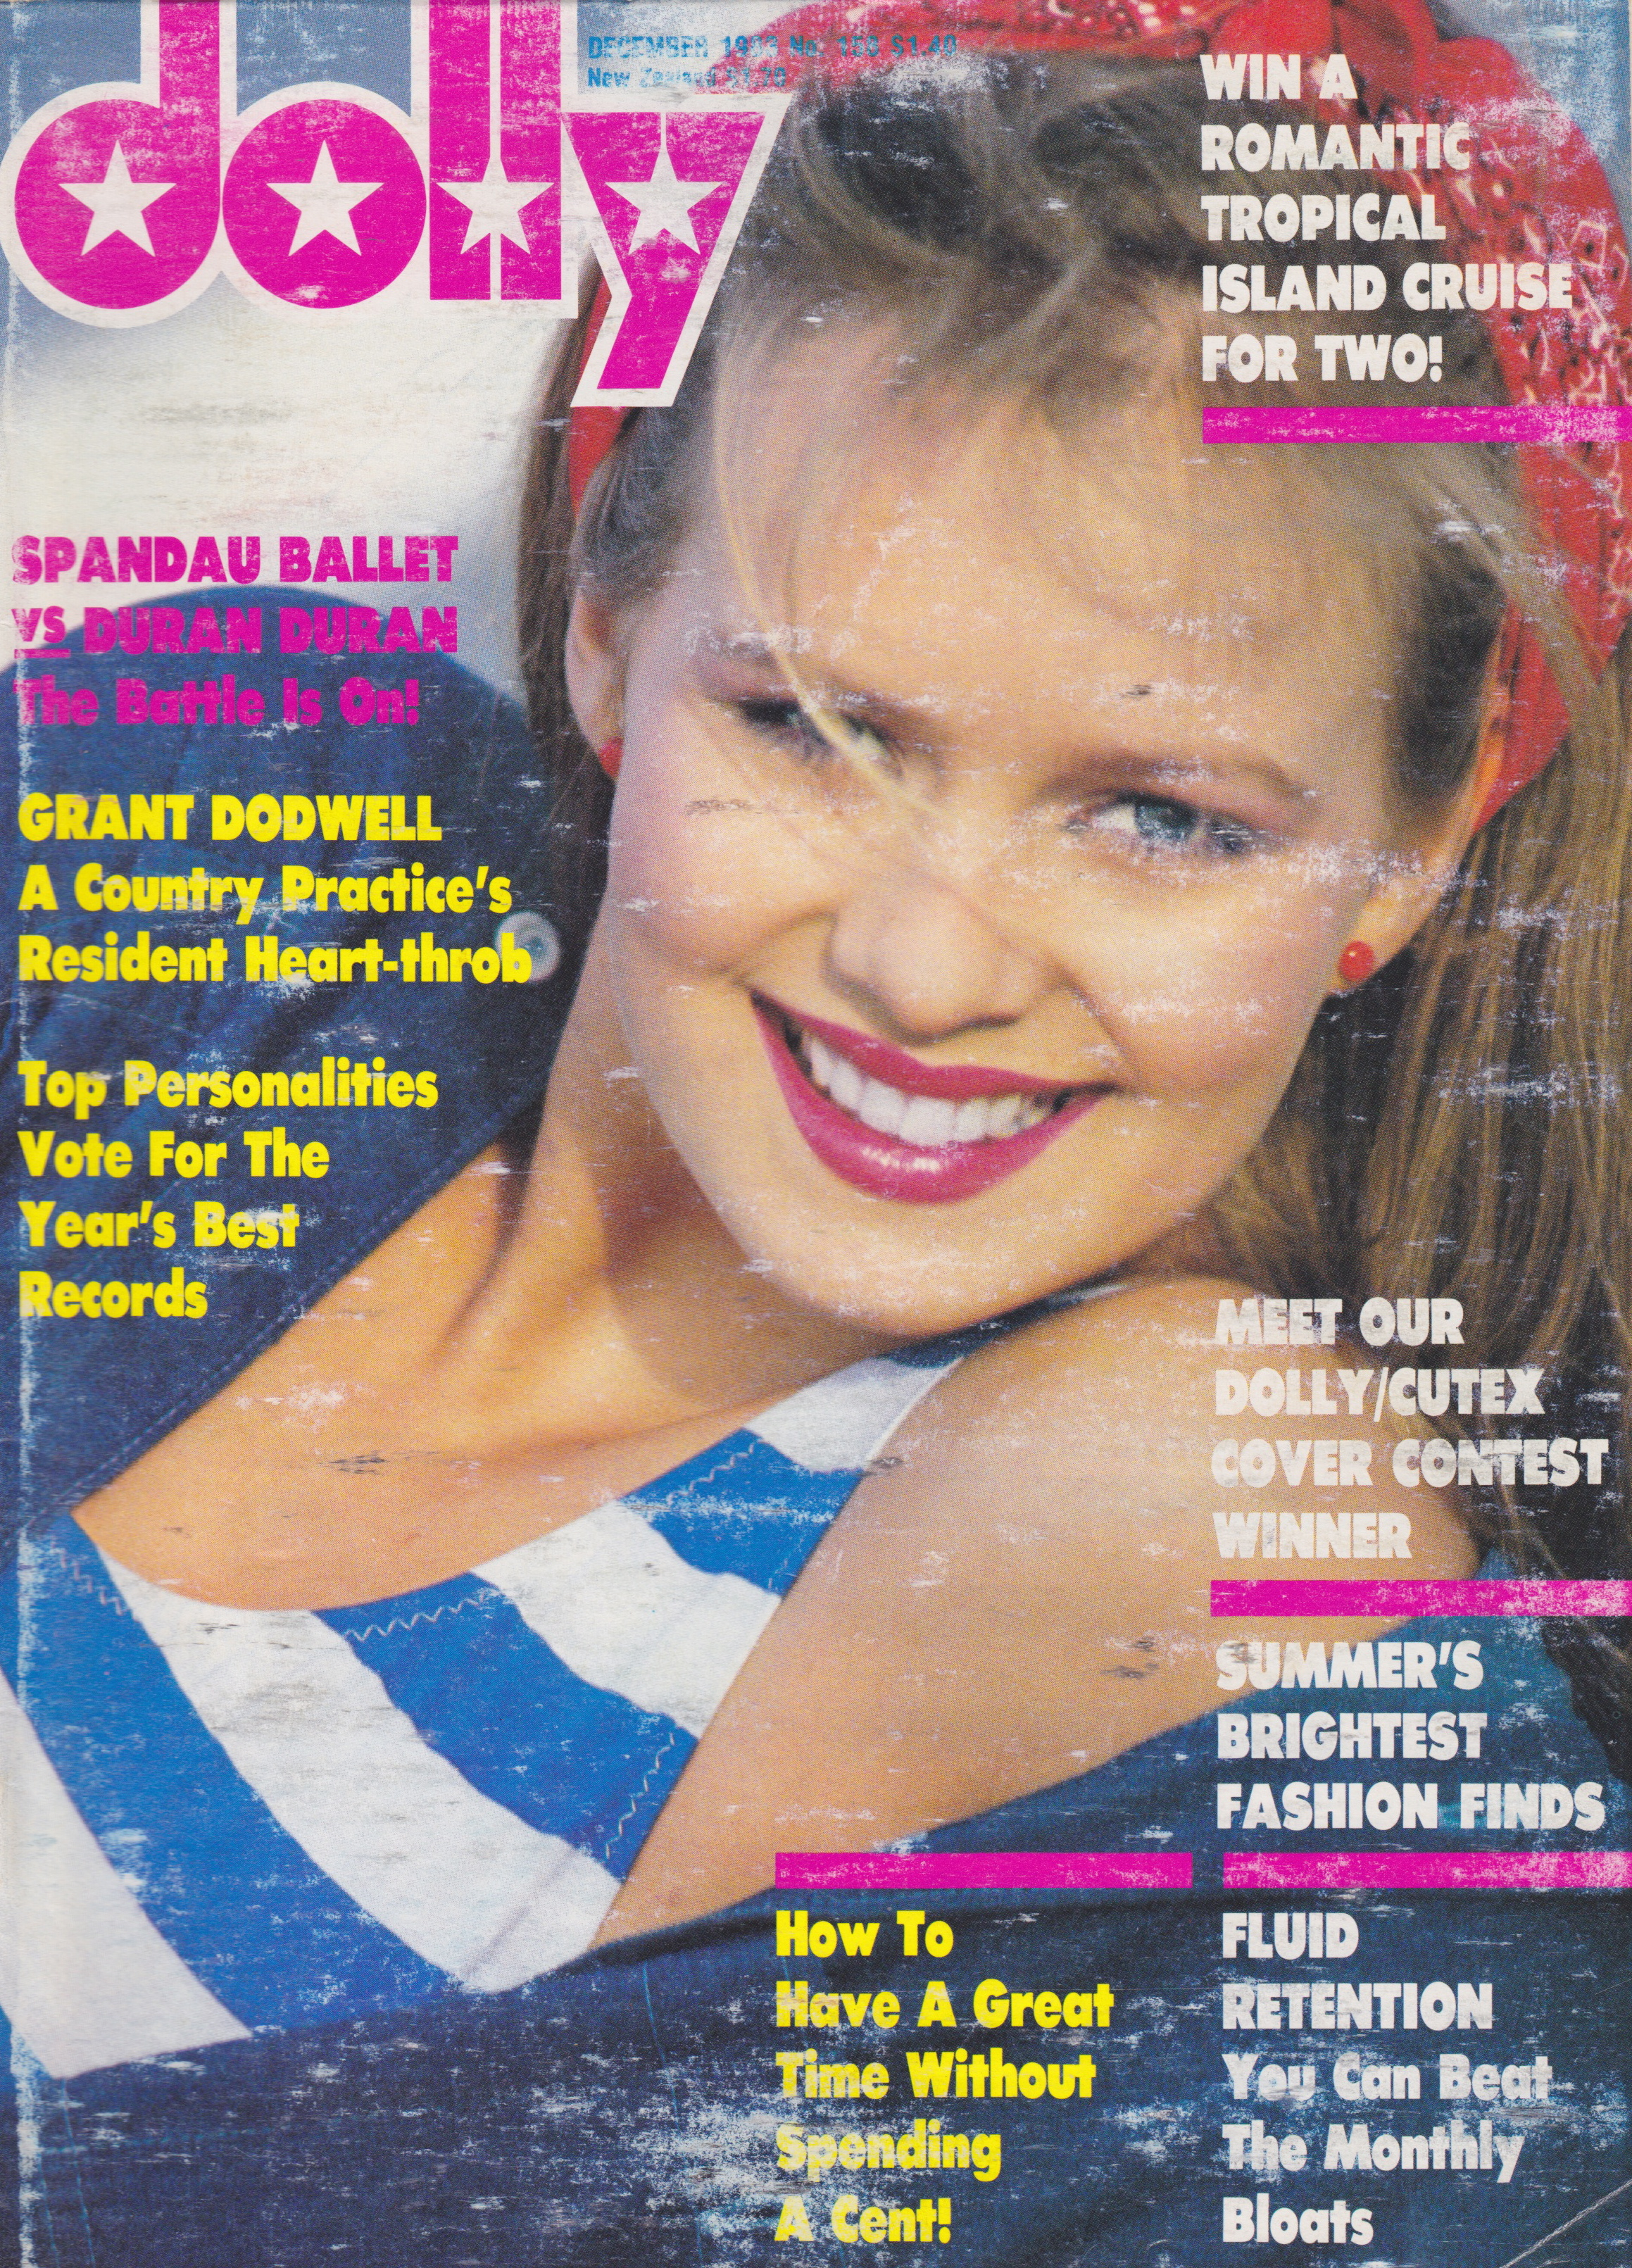 Dolly Magazine Covergirl Competition 1983 | Winner Samantha Ward